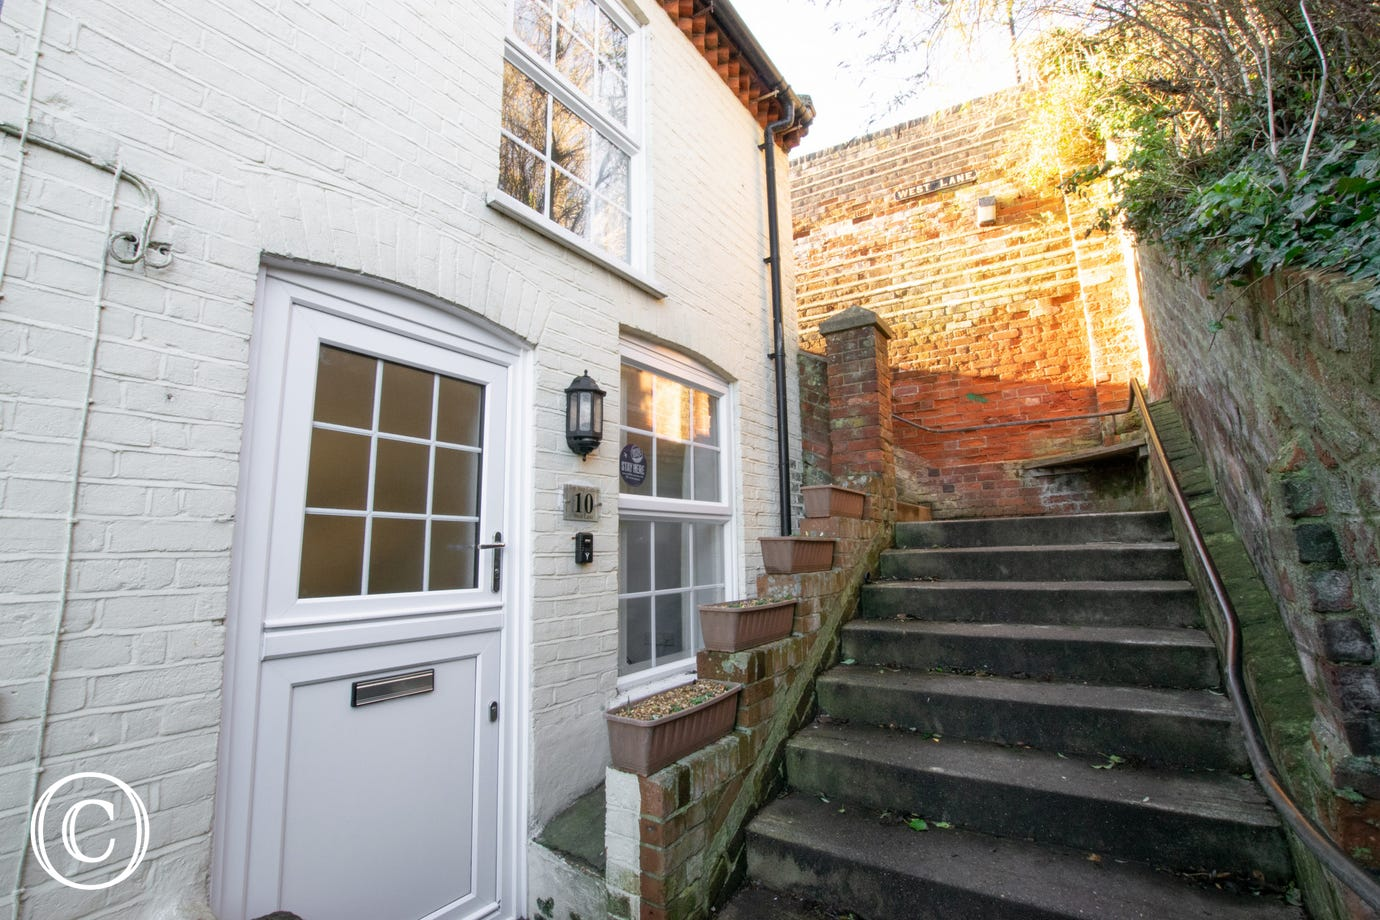 This fabulous property for three in the heart of Aldeburgh has a quirky but convenient location.